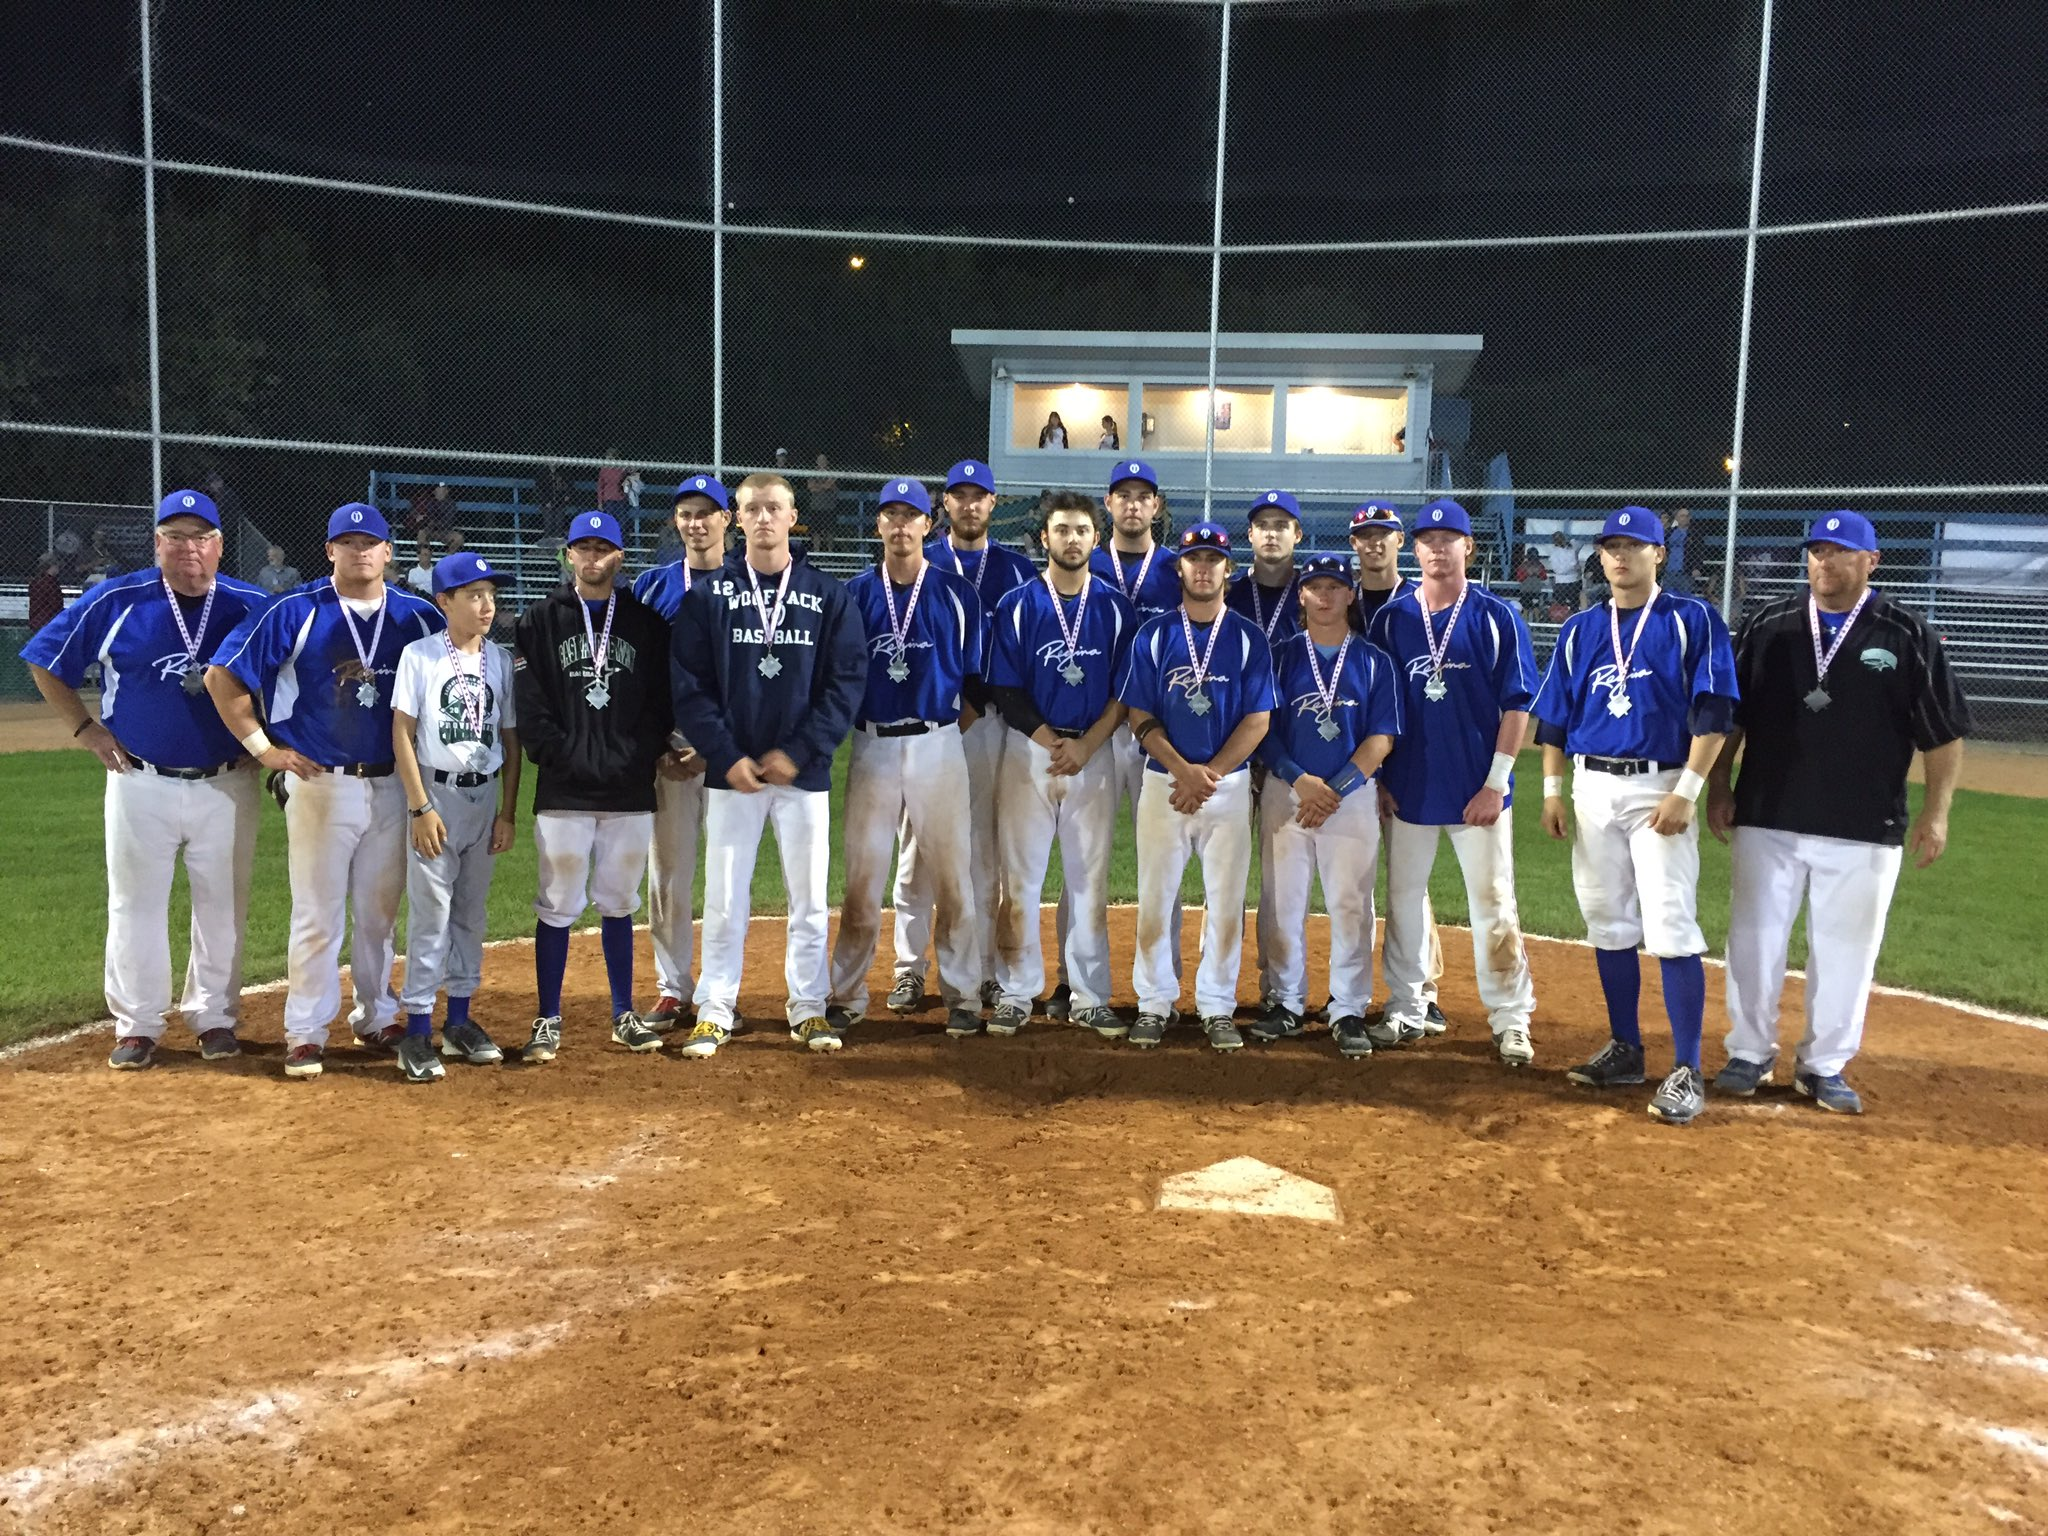 A VERY SPECIAL CONGRADUALTIONS TO COACH MYLES and THE REGINA OPTIMIST HOST TEAM!  INCREDIBLE BASEBALL !!!  SILVER MEDAL NATIONAL WINNERS !!! - Image 3